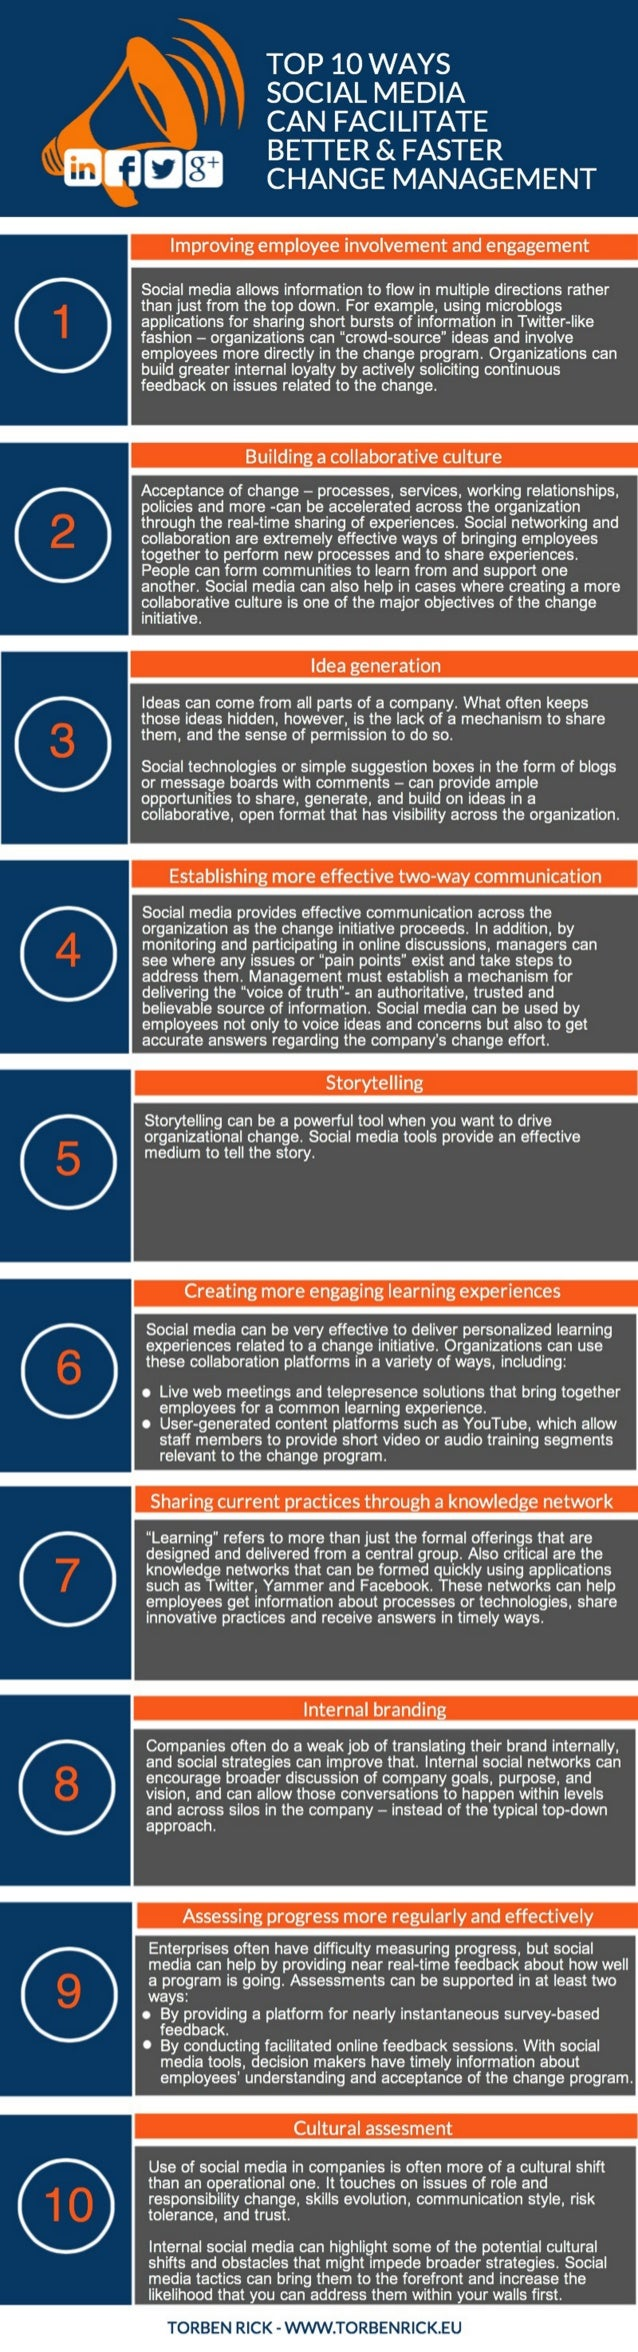 Infographic: Top 10 ways social media can facilitate change management